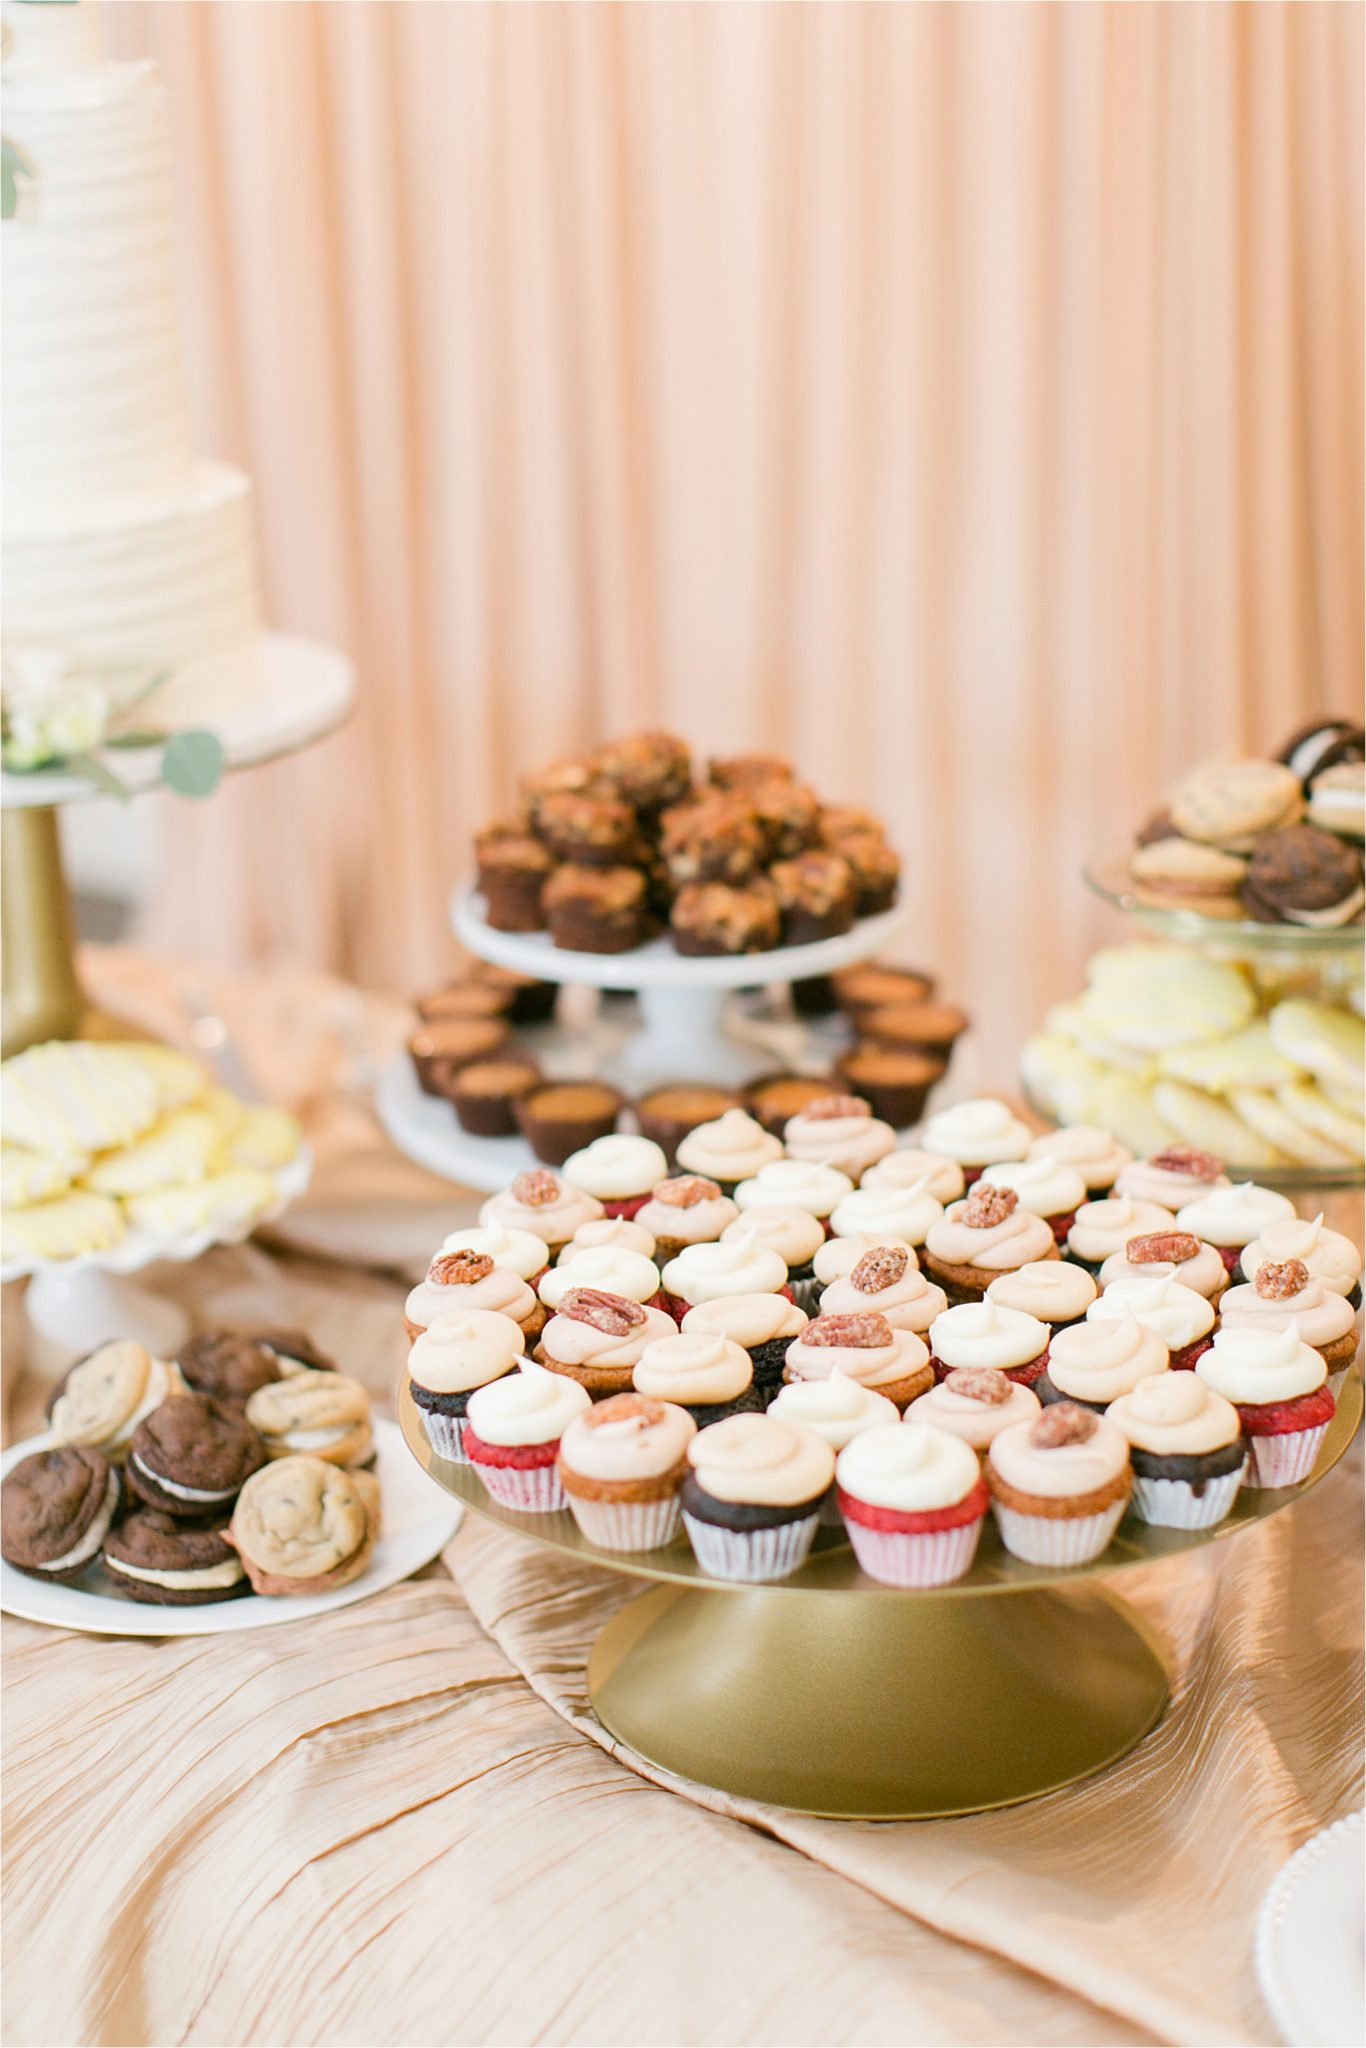 EllenJay Dessert Bar-dessert table-wedding-reception-food ideas